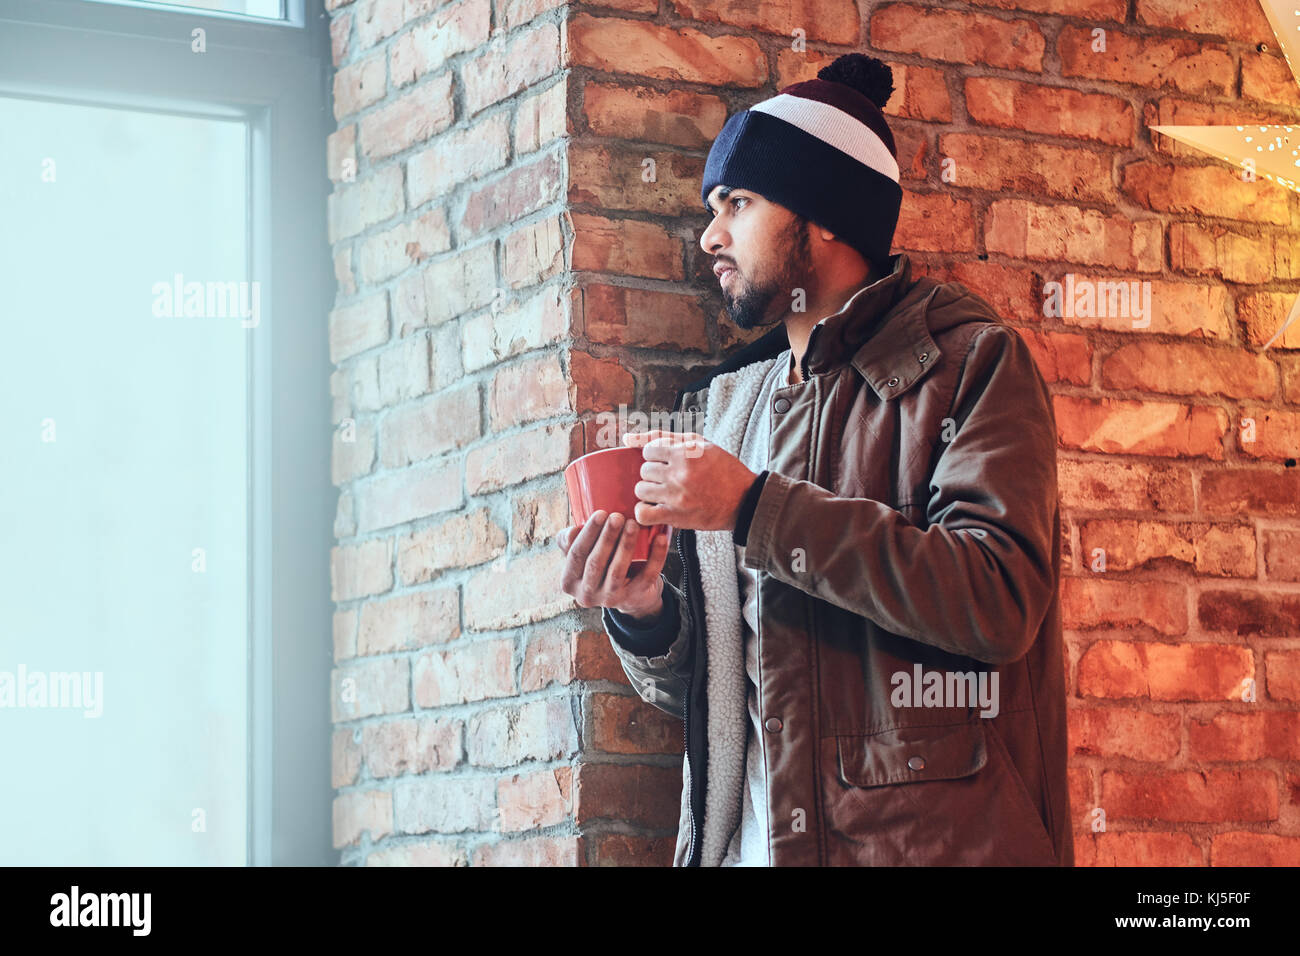 b63c889941e Portrait of bearded Indian hipster male dressed in a warm jacket and a hat